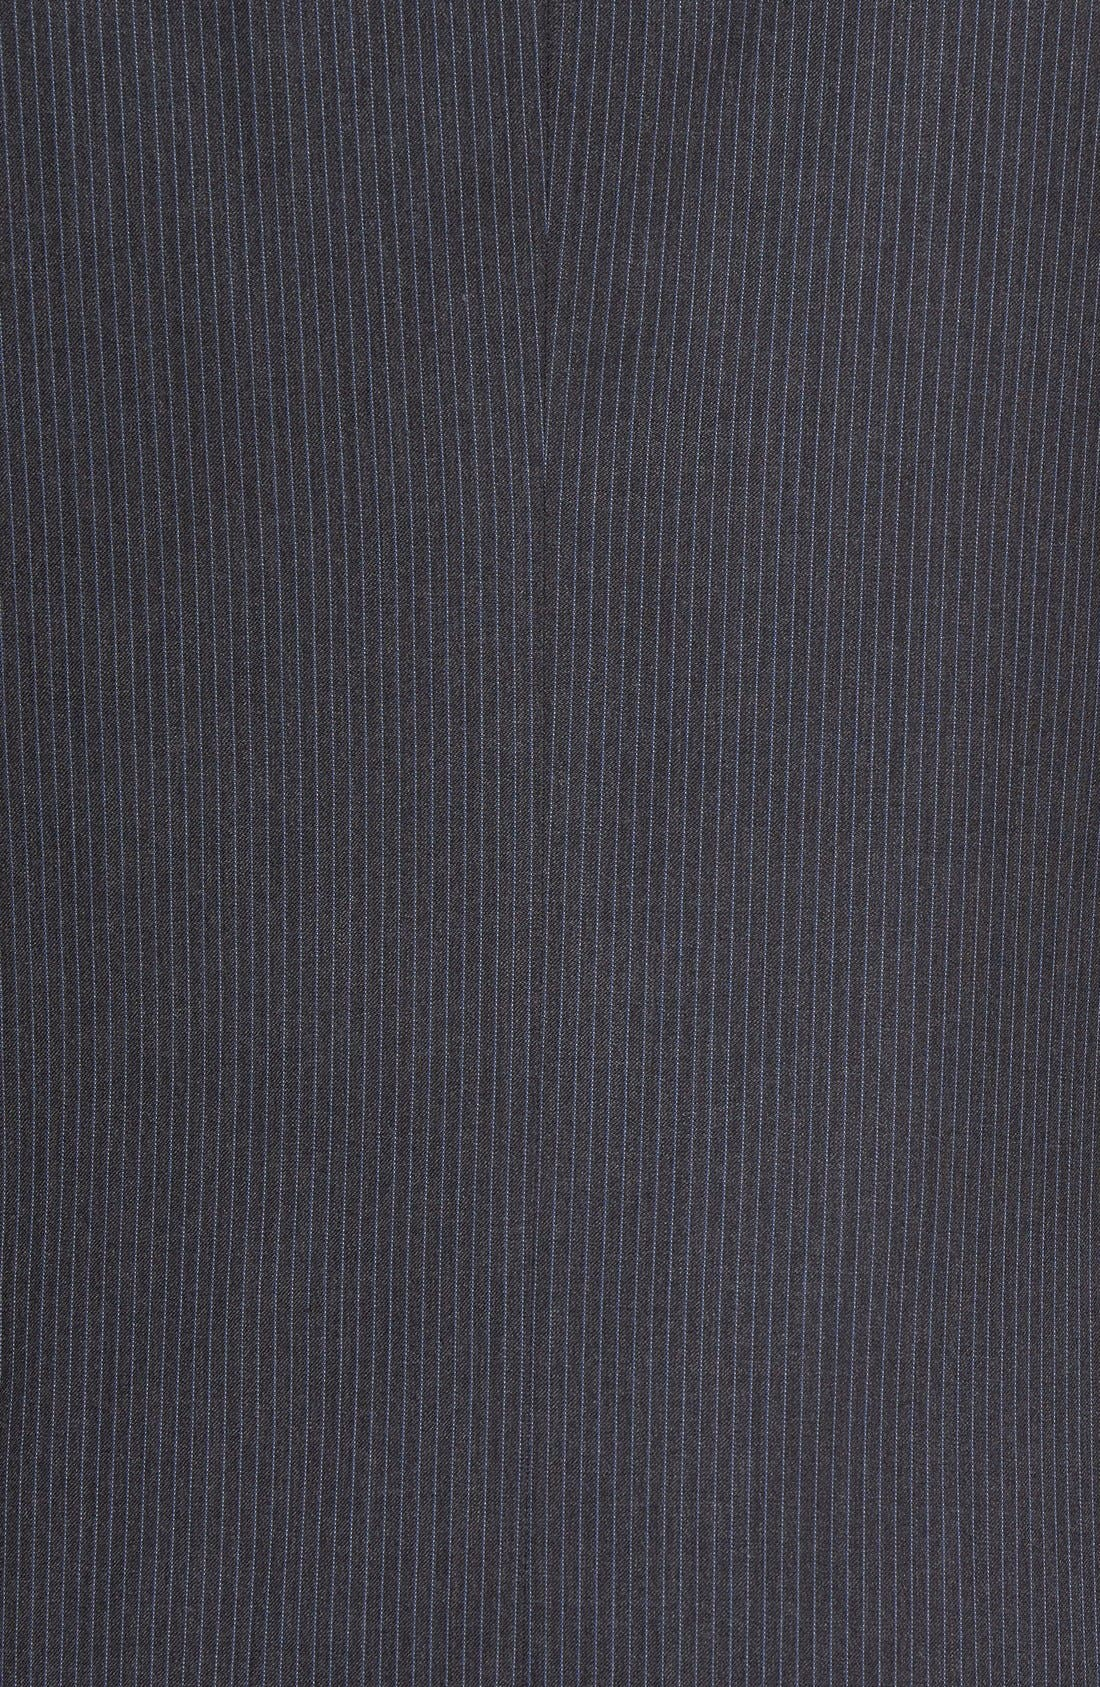 Trim Fit Stripe Wool Suit,                             Alternate thumbnail 7, color,